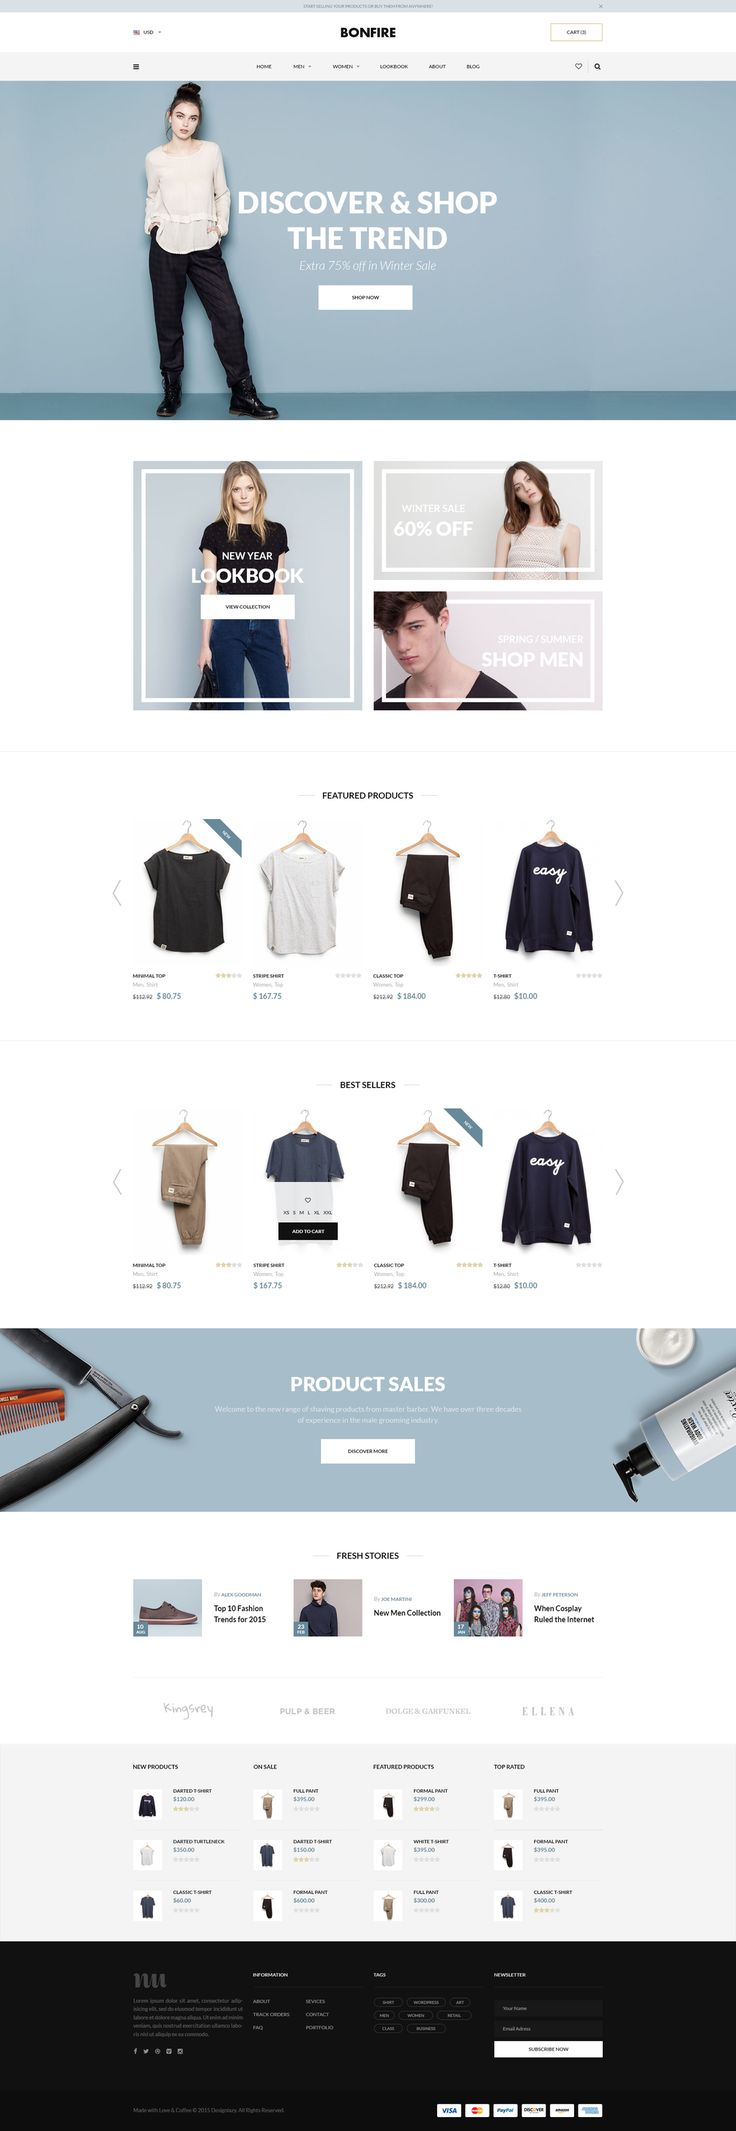 Bonfire – Free E-commerce Website Template #pds #website #ecommerce #shop…